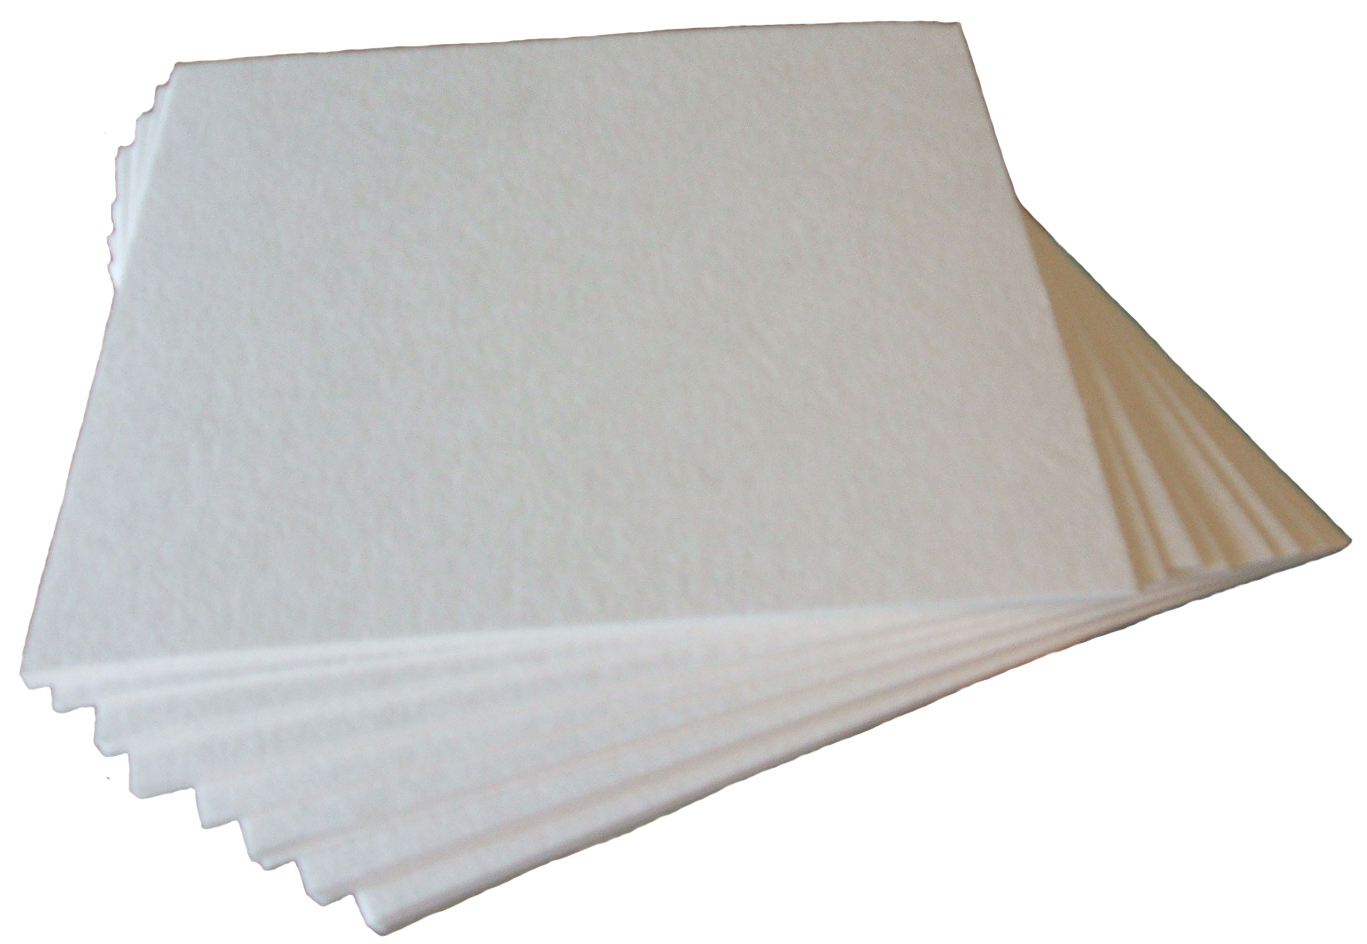 Standard Pulp Blotters for Cobb Testing